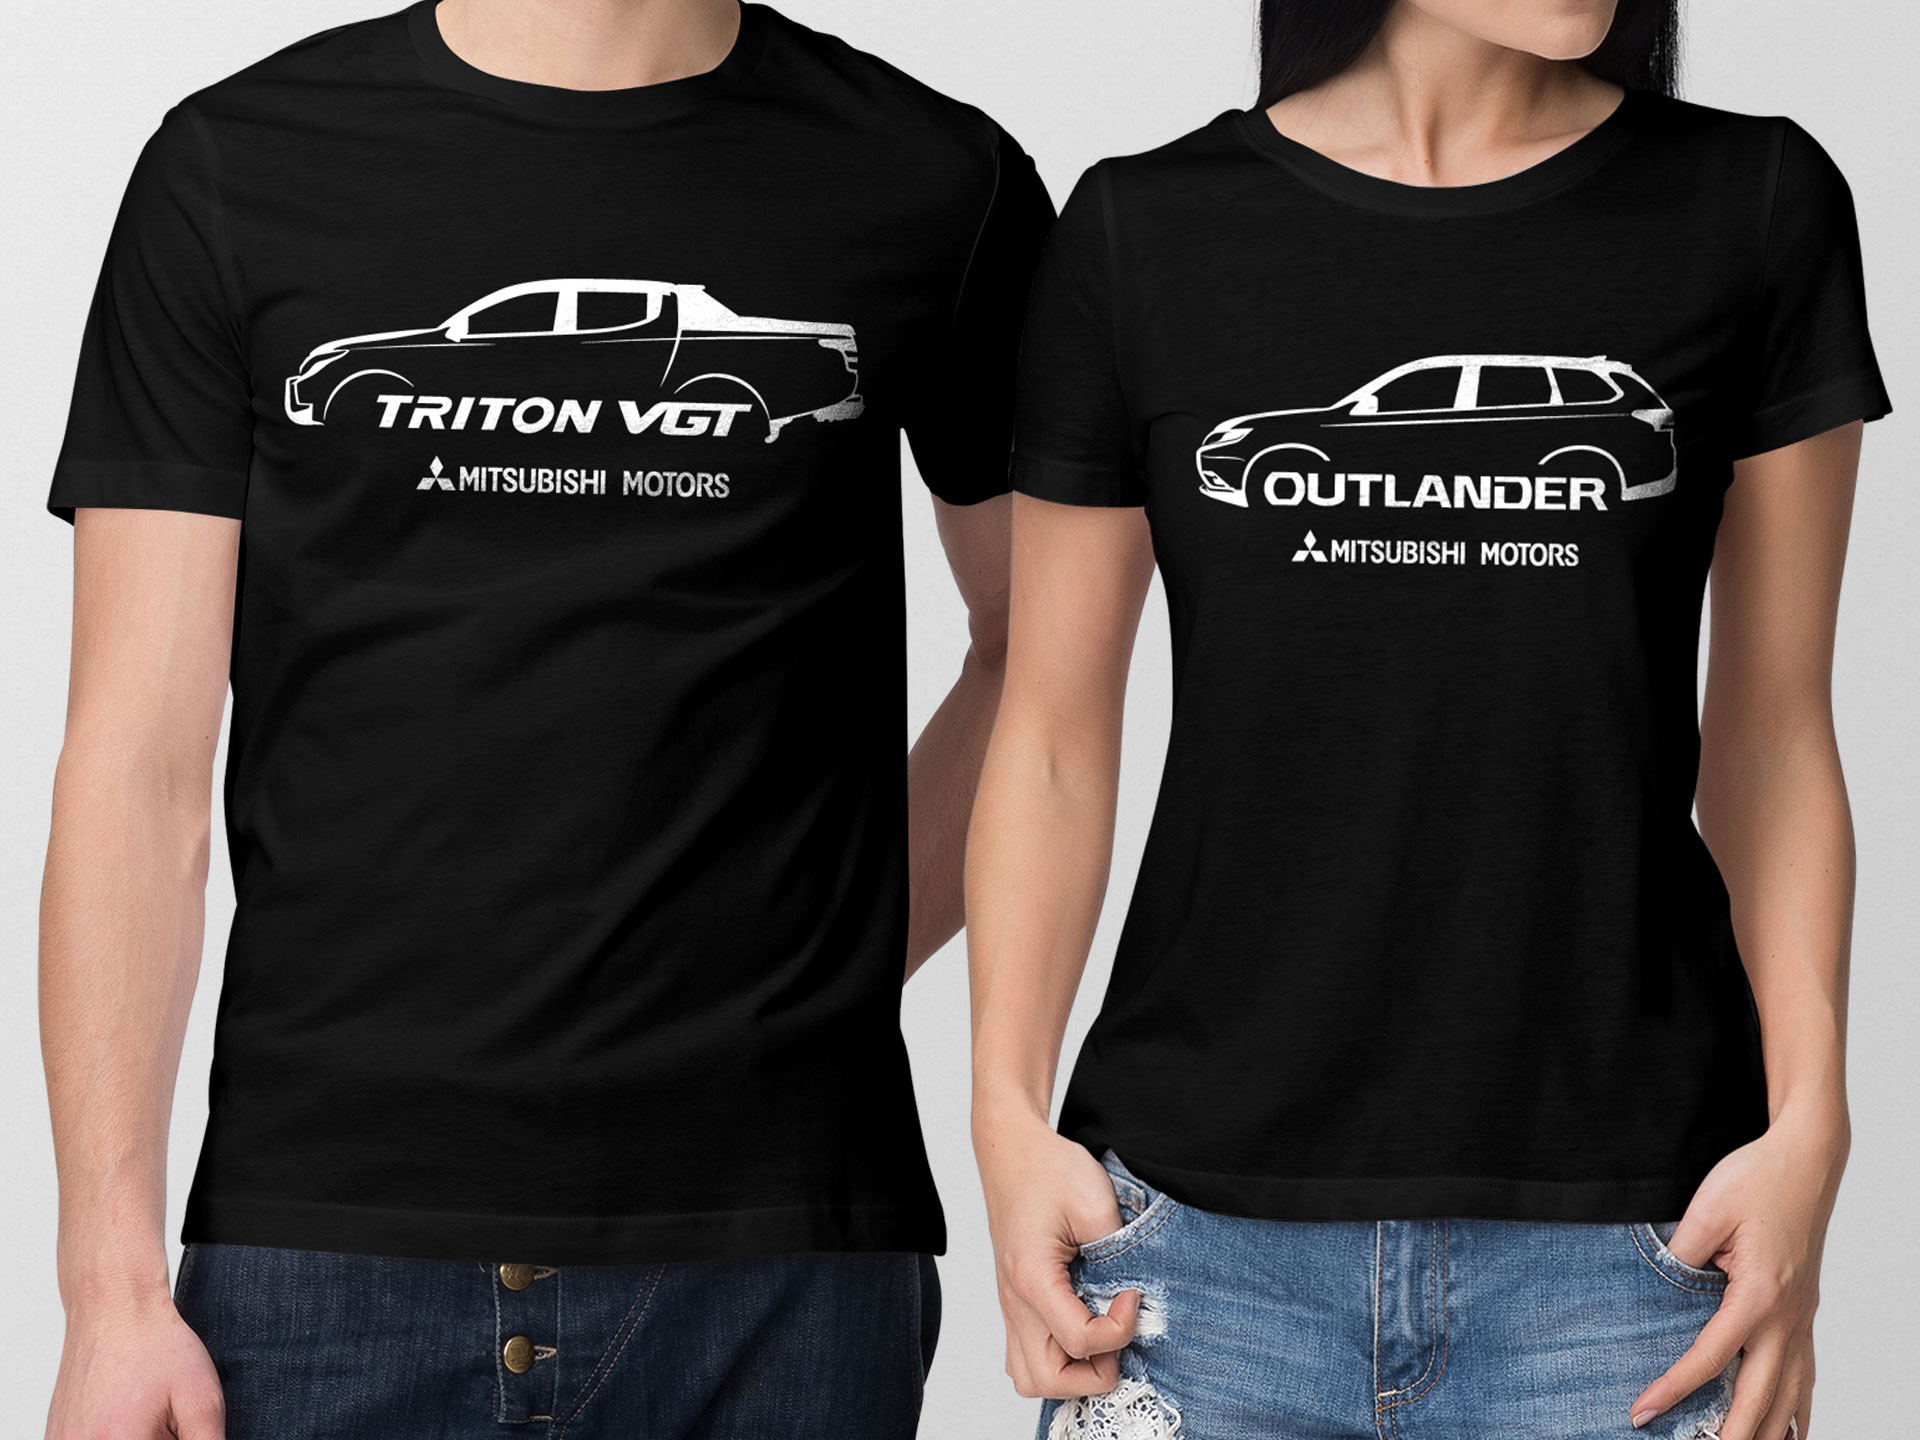 Sebangga Dunia Mitsubishi Triton VGT and Outlander Black Graphic Tees 01